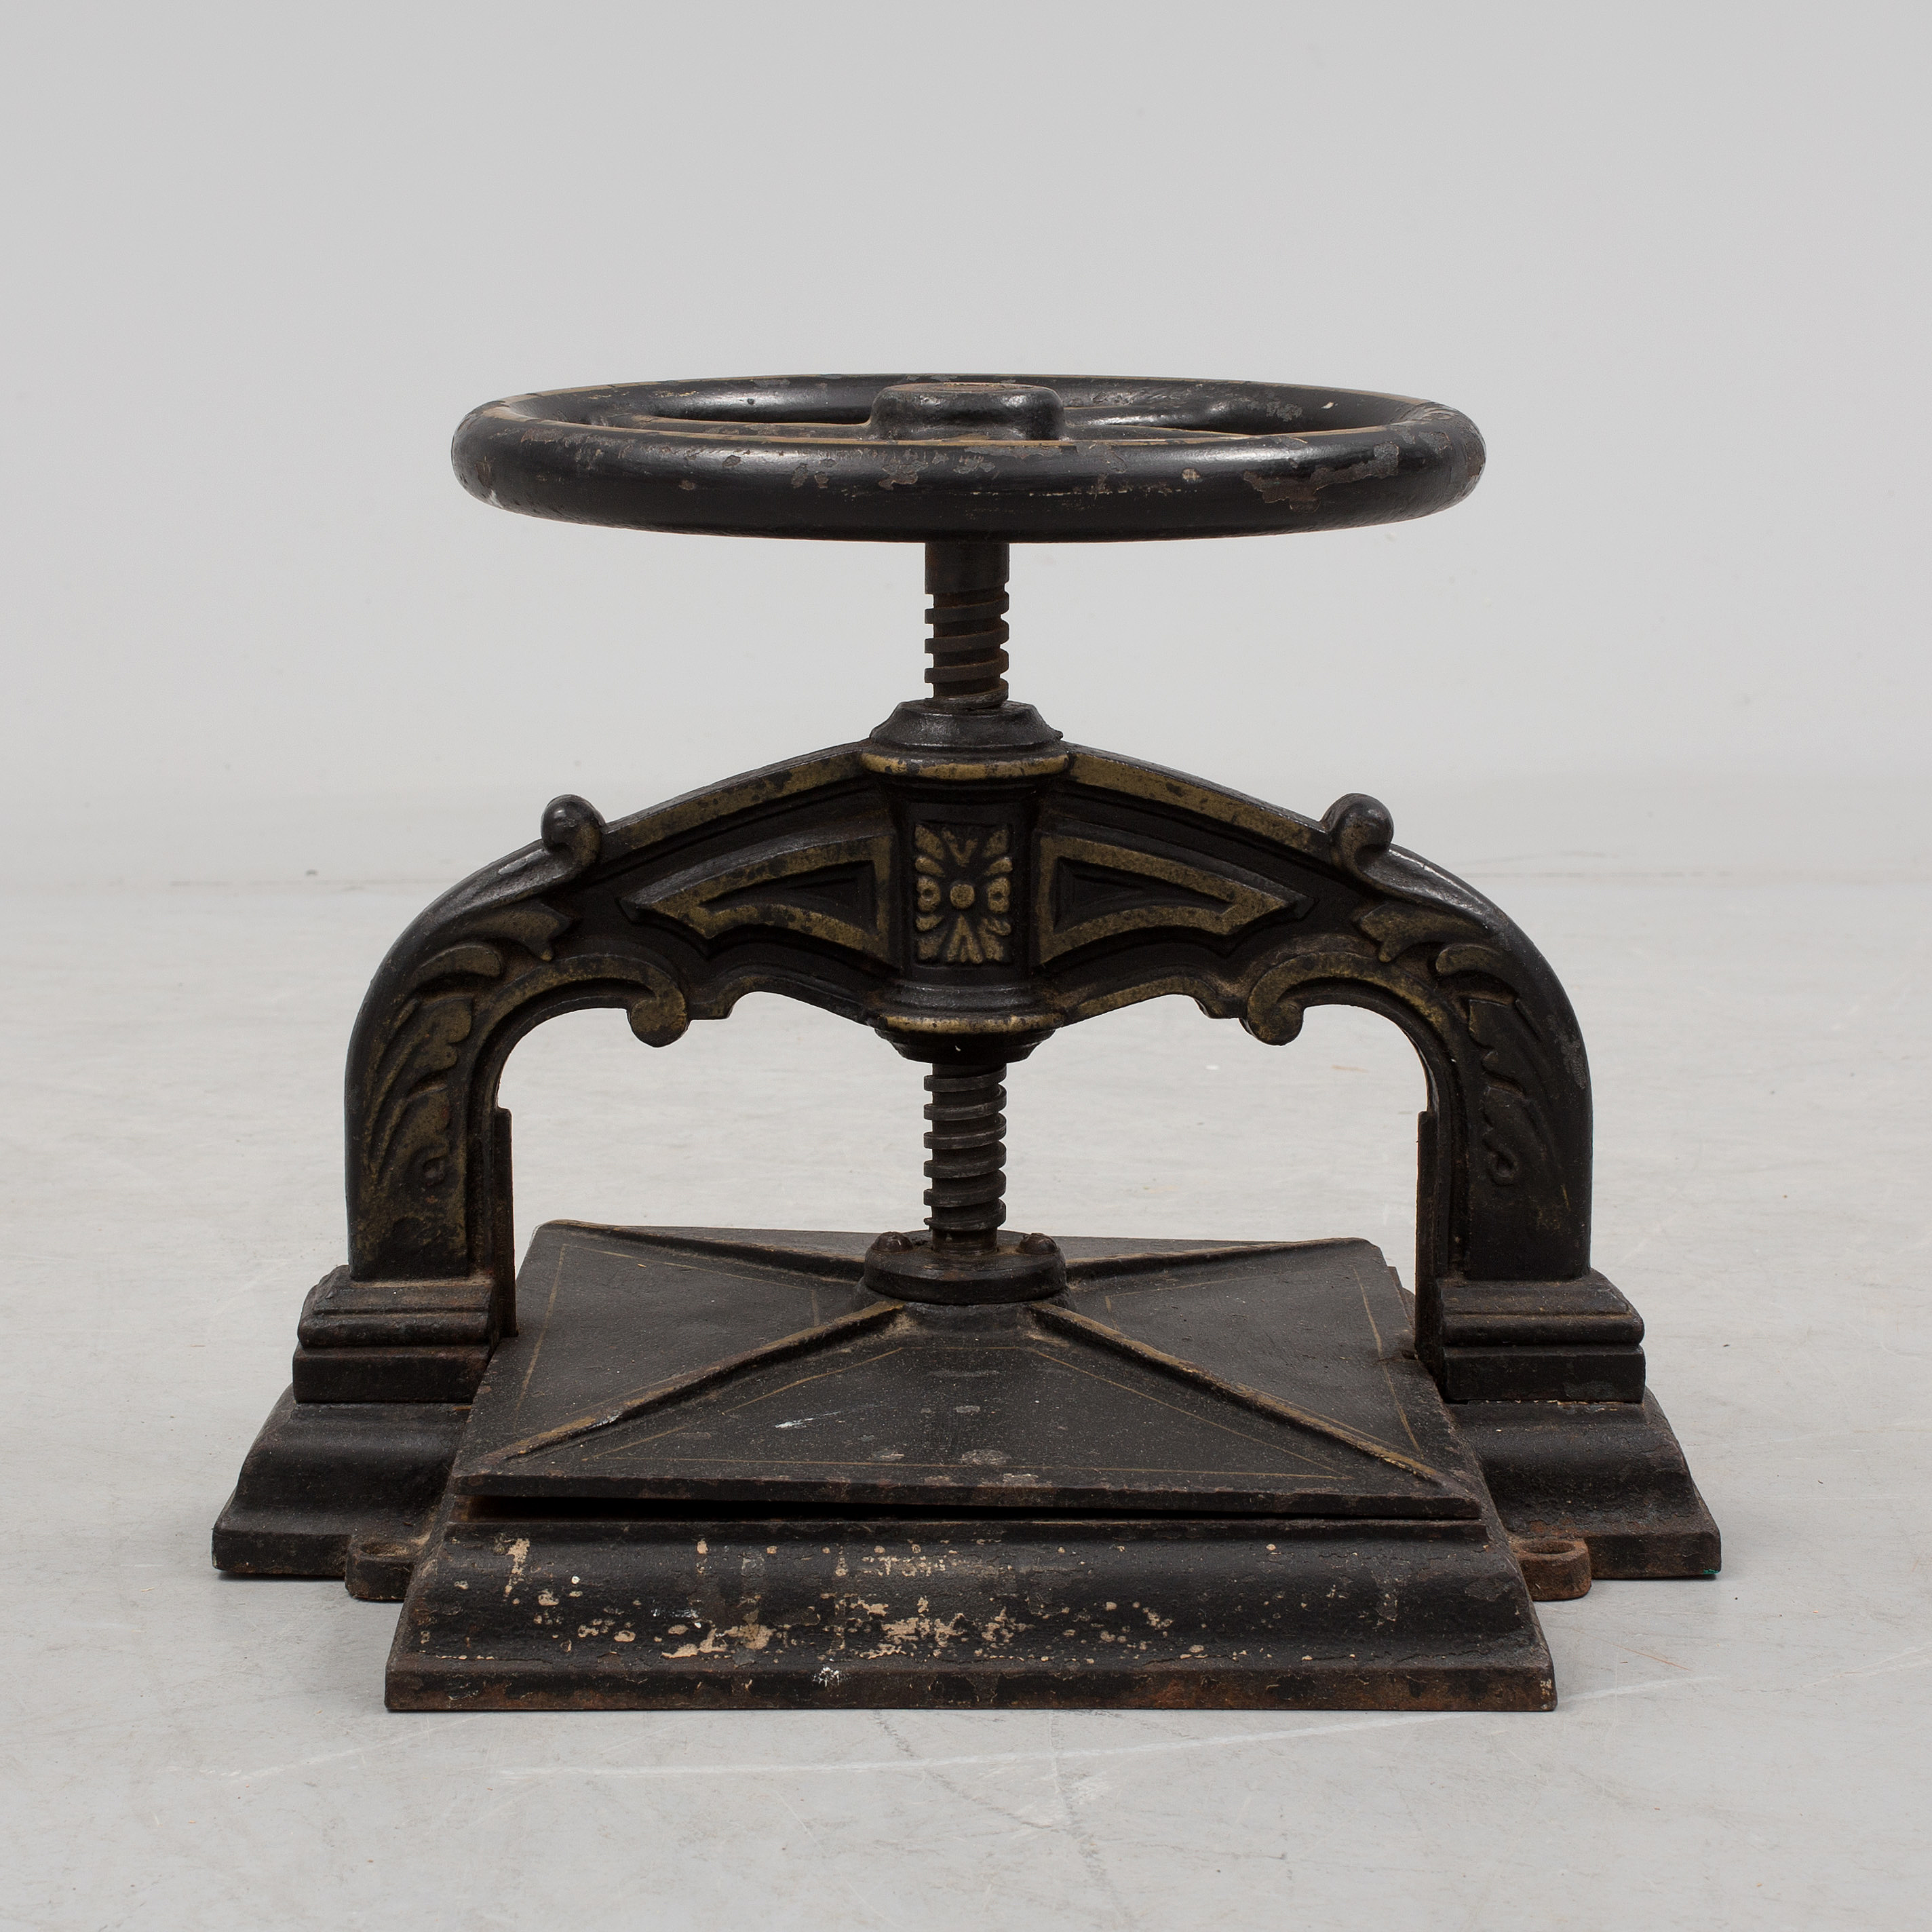 A cast iron book press from around year 1900  - Bukowskis